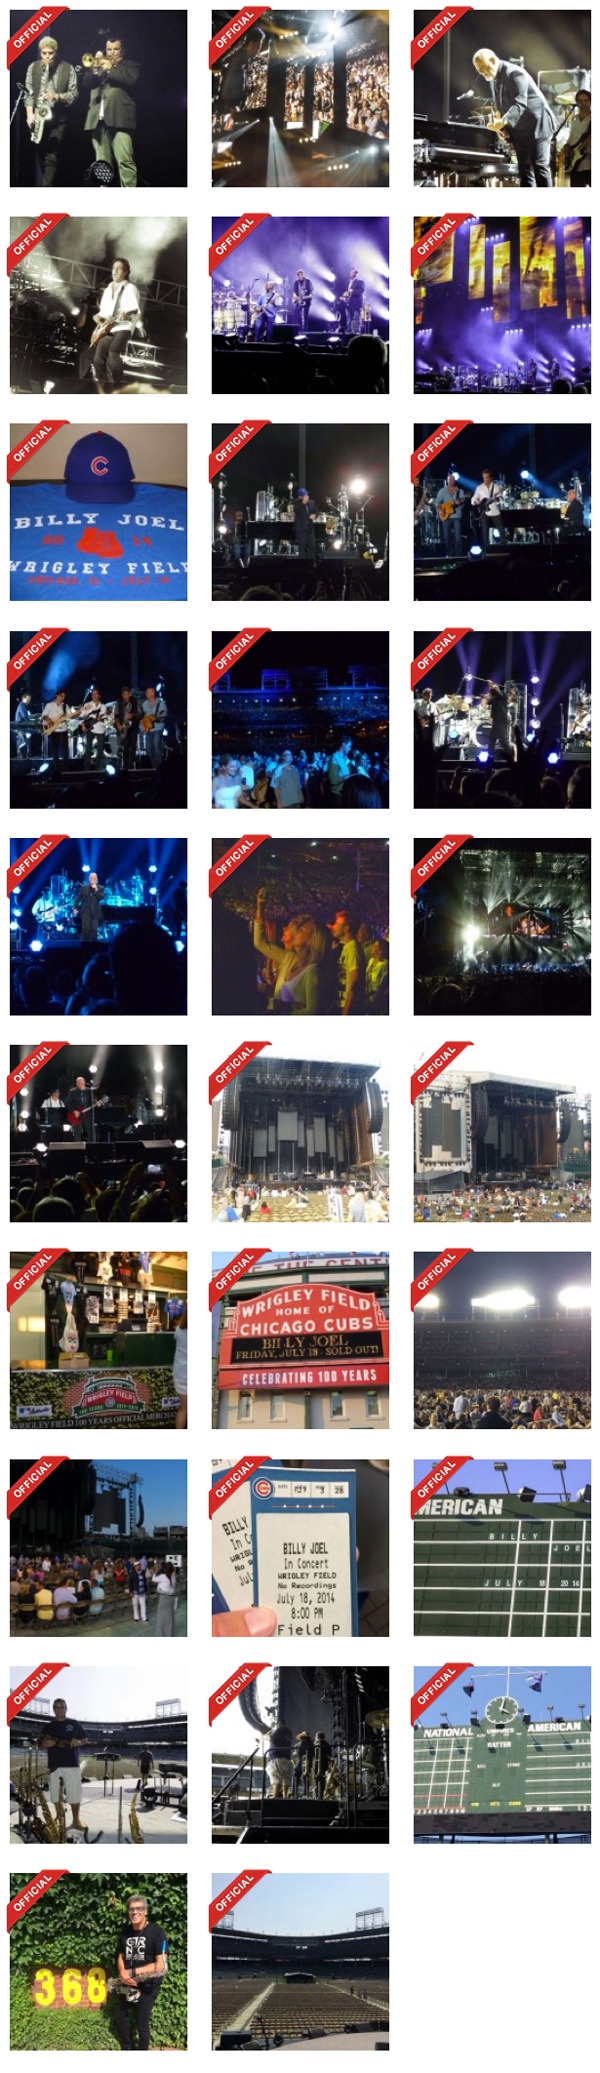 Billy Joel concert photos at Wrigley Field in Chicago, IL, on July 18, 2014